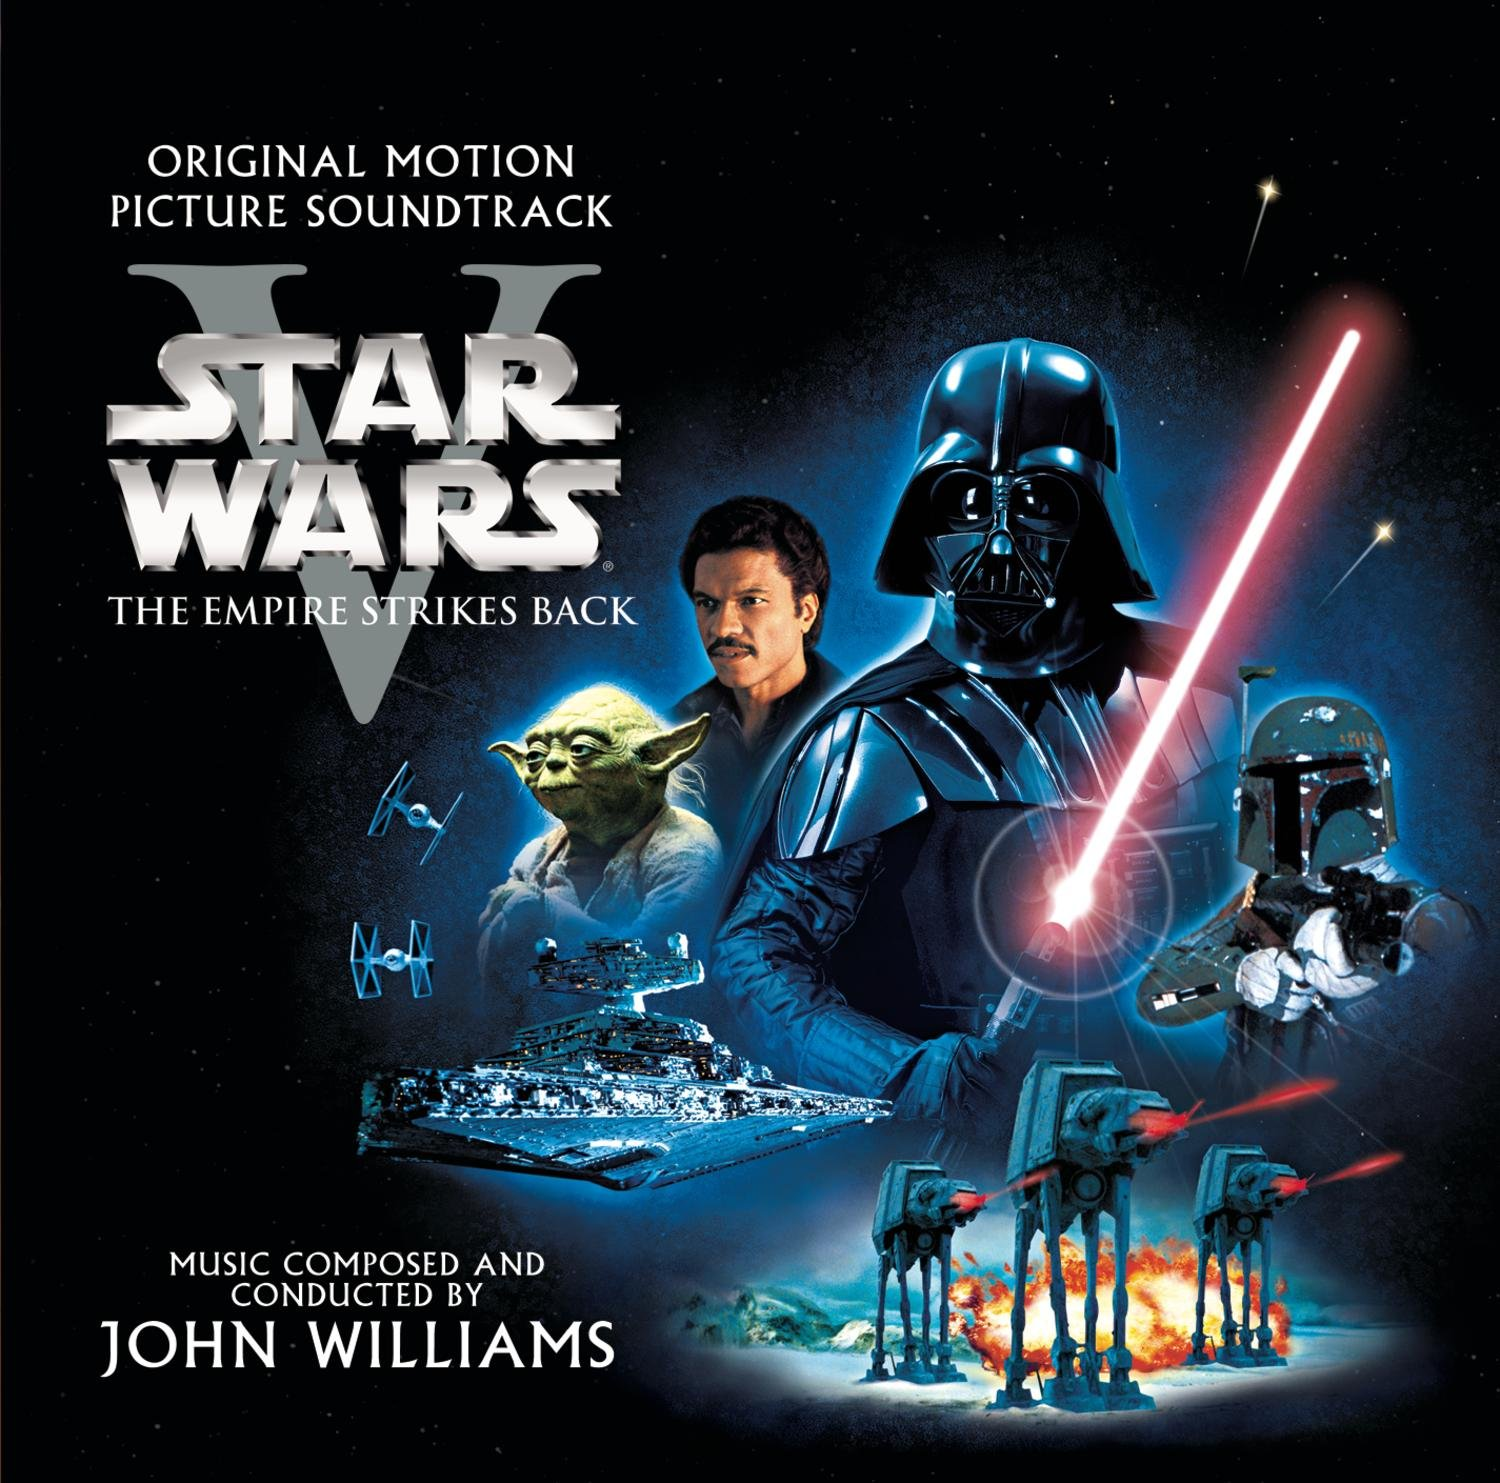 Star Wars Episode V: The Empire Strikes Back (Original Motion Picture Soundtrack) by SONY MASTERWORKS